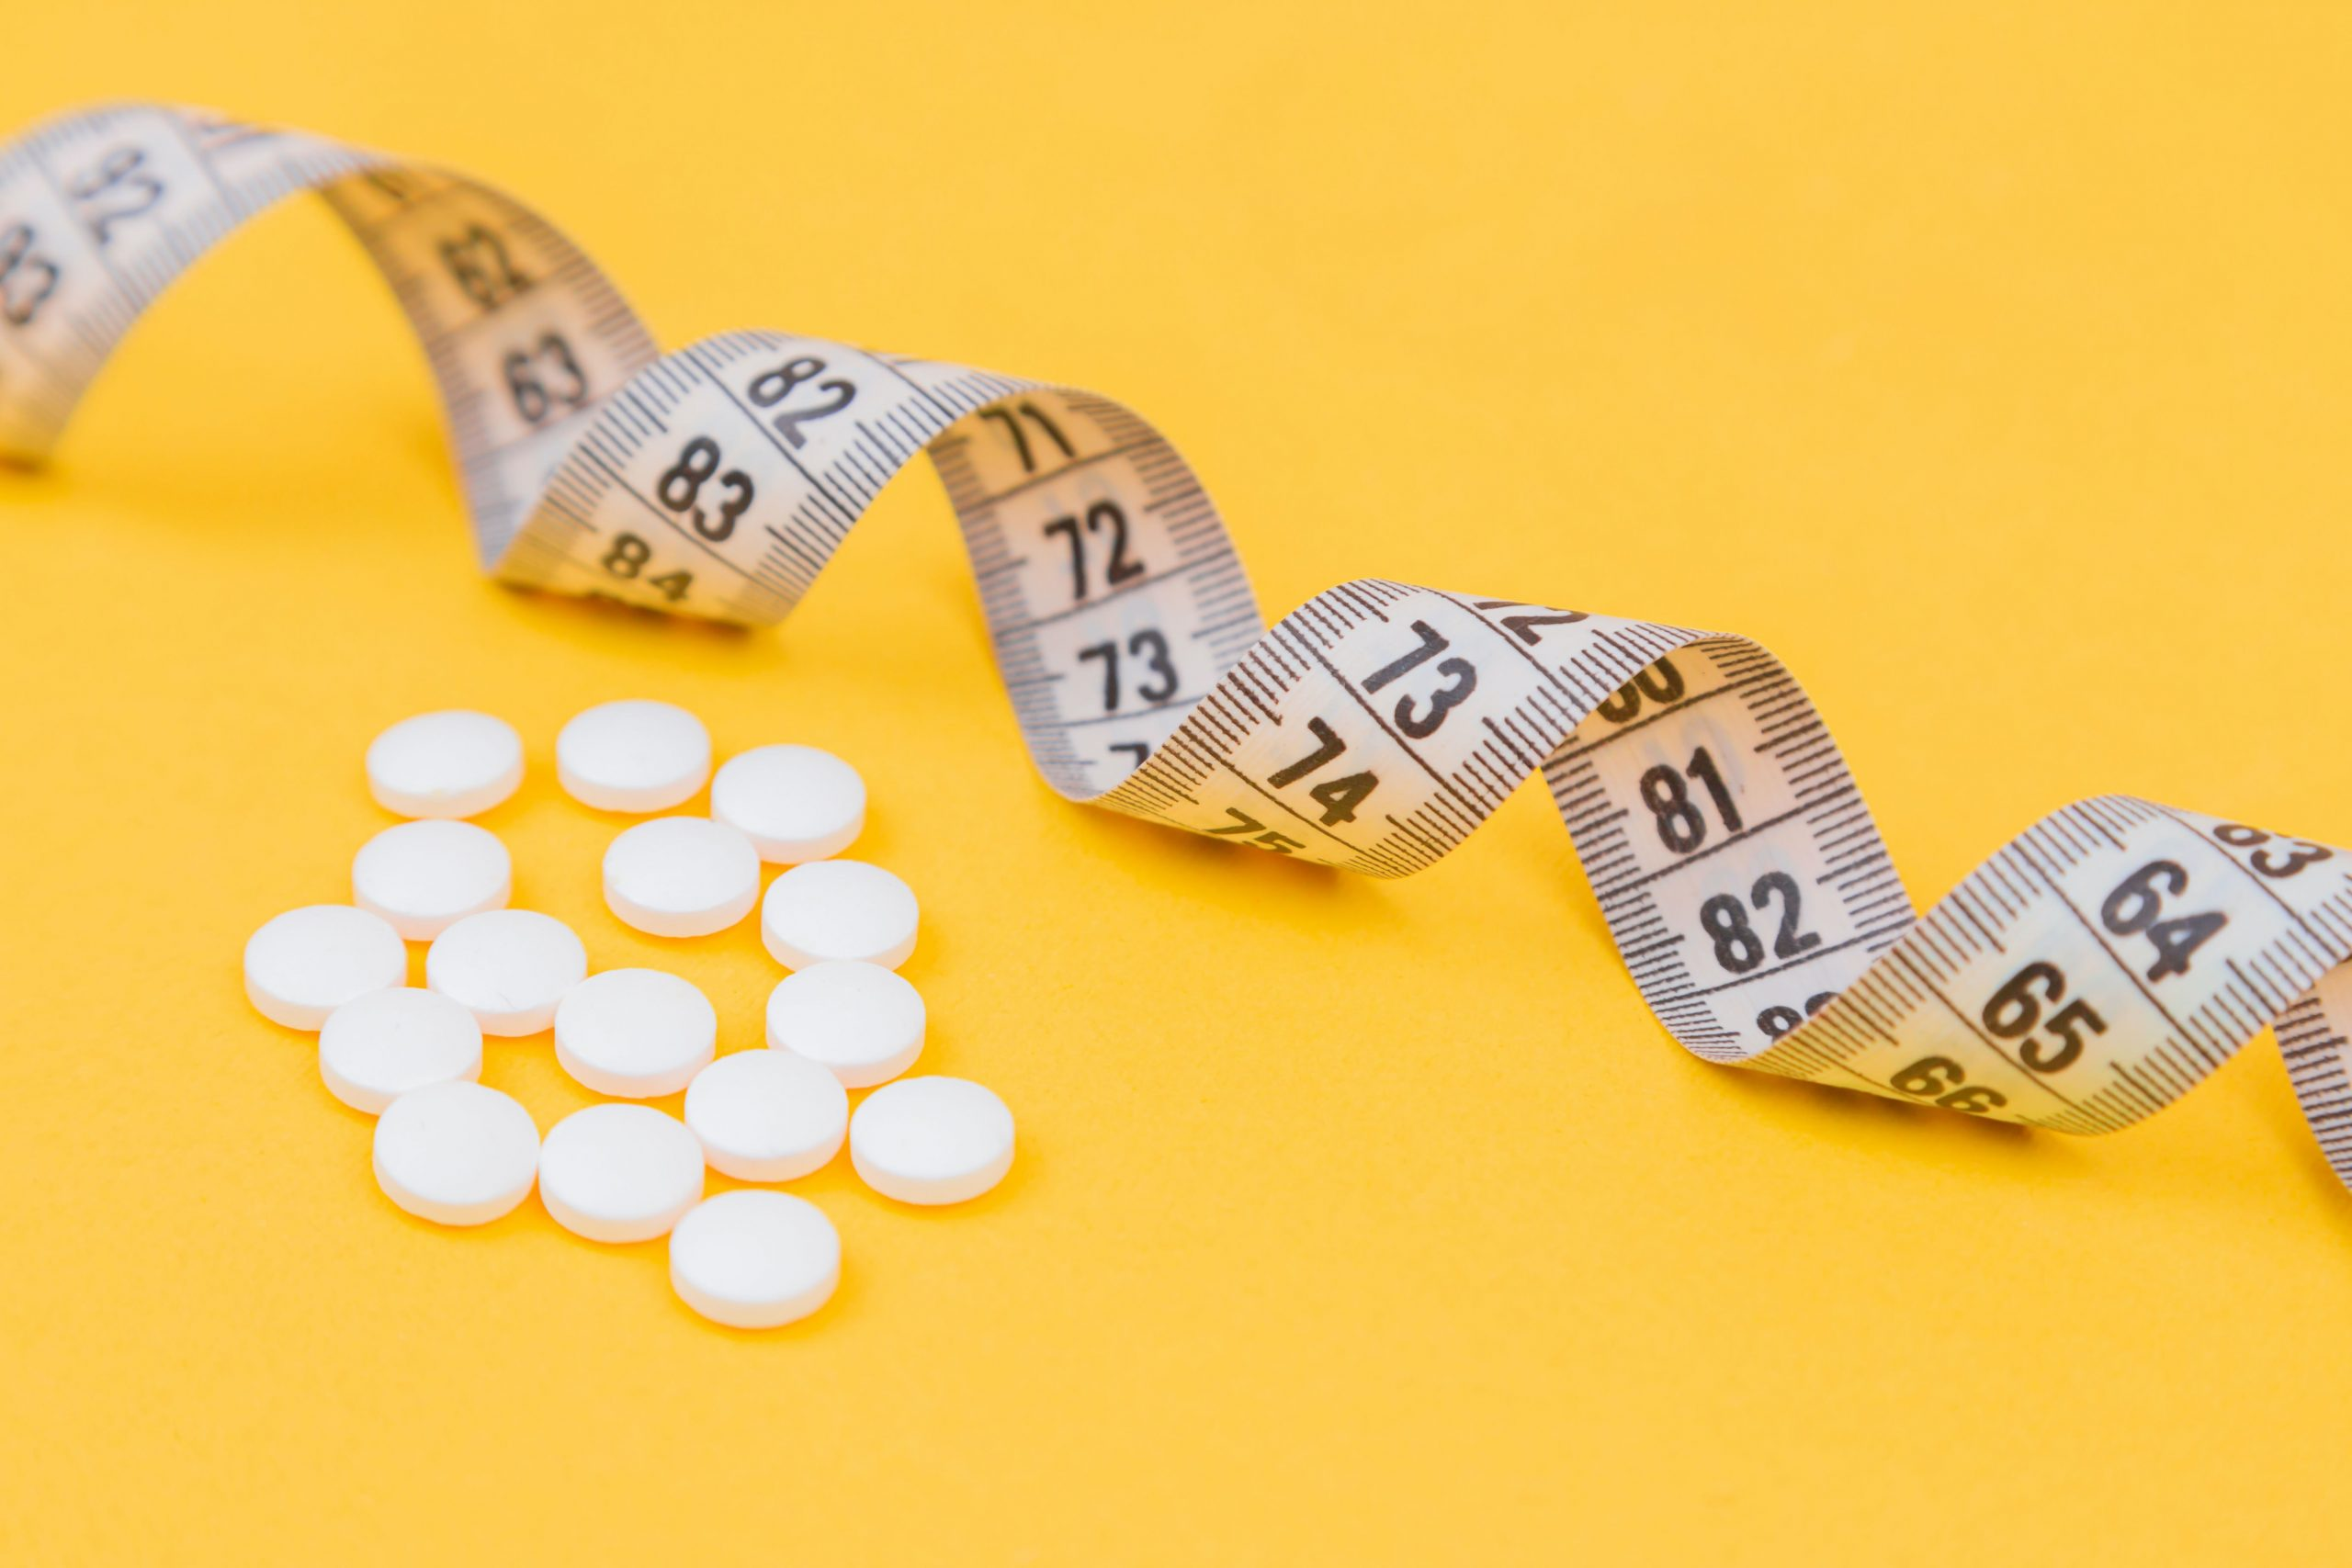 Medications and measuring tape photo by Diana Polekhina on Unsplash